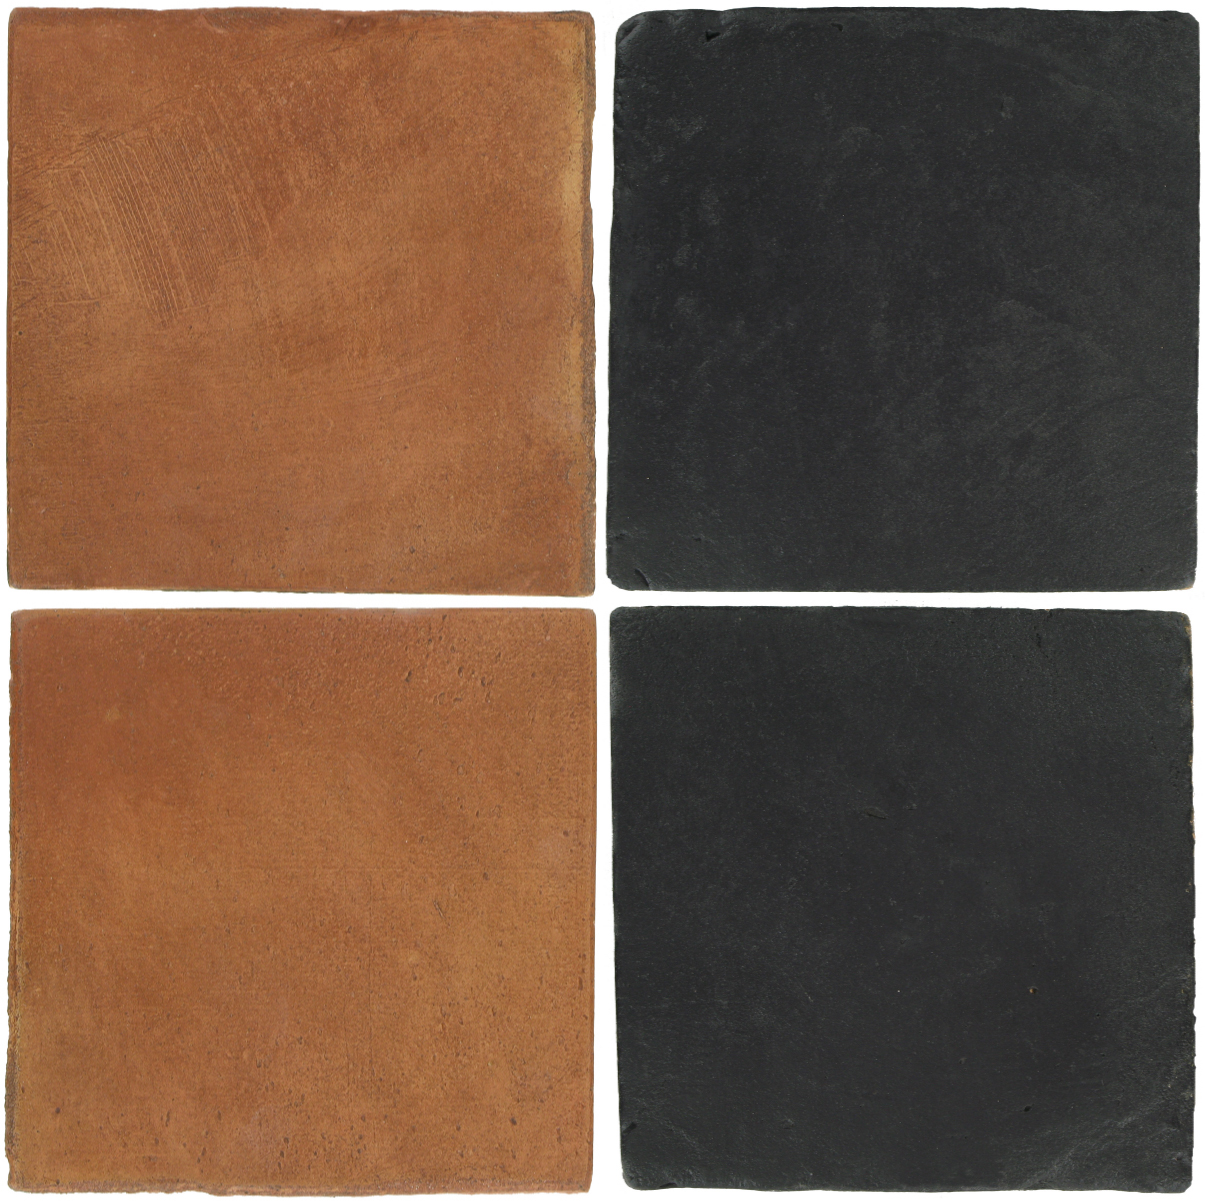 Pedralbes Antique Terracotta  2 Color Combinations  OHS-PSTR Traditional + VTG-PGCB Carbon Black